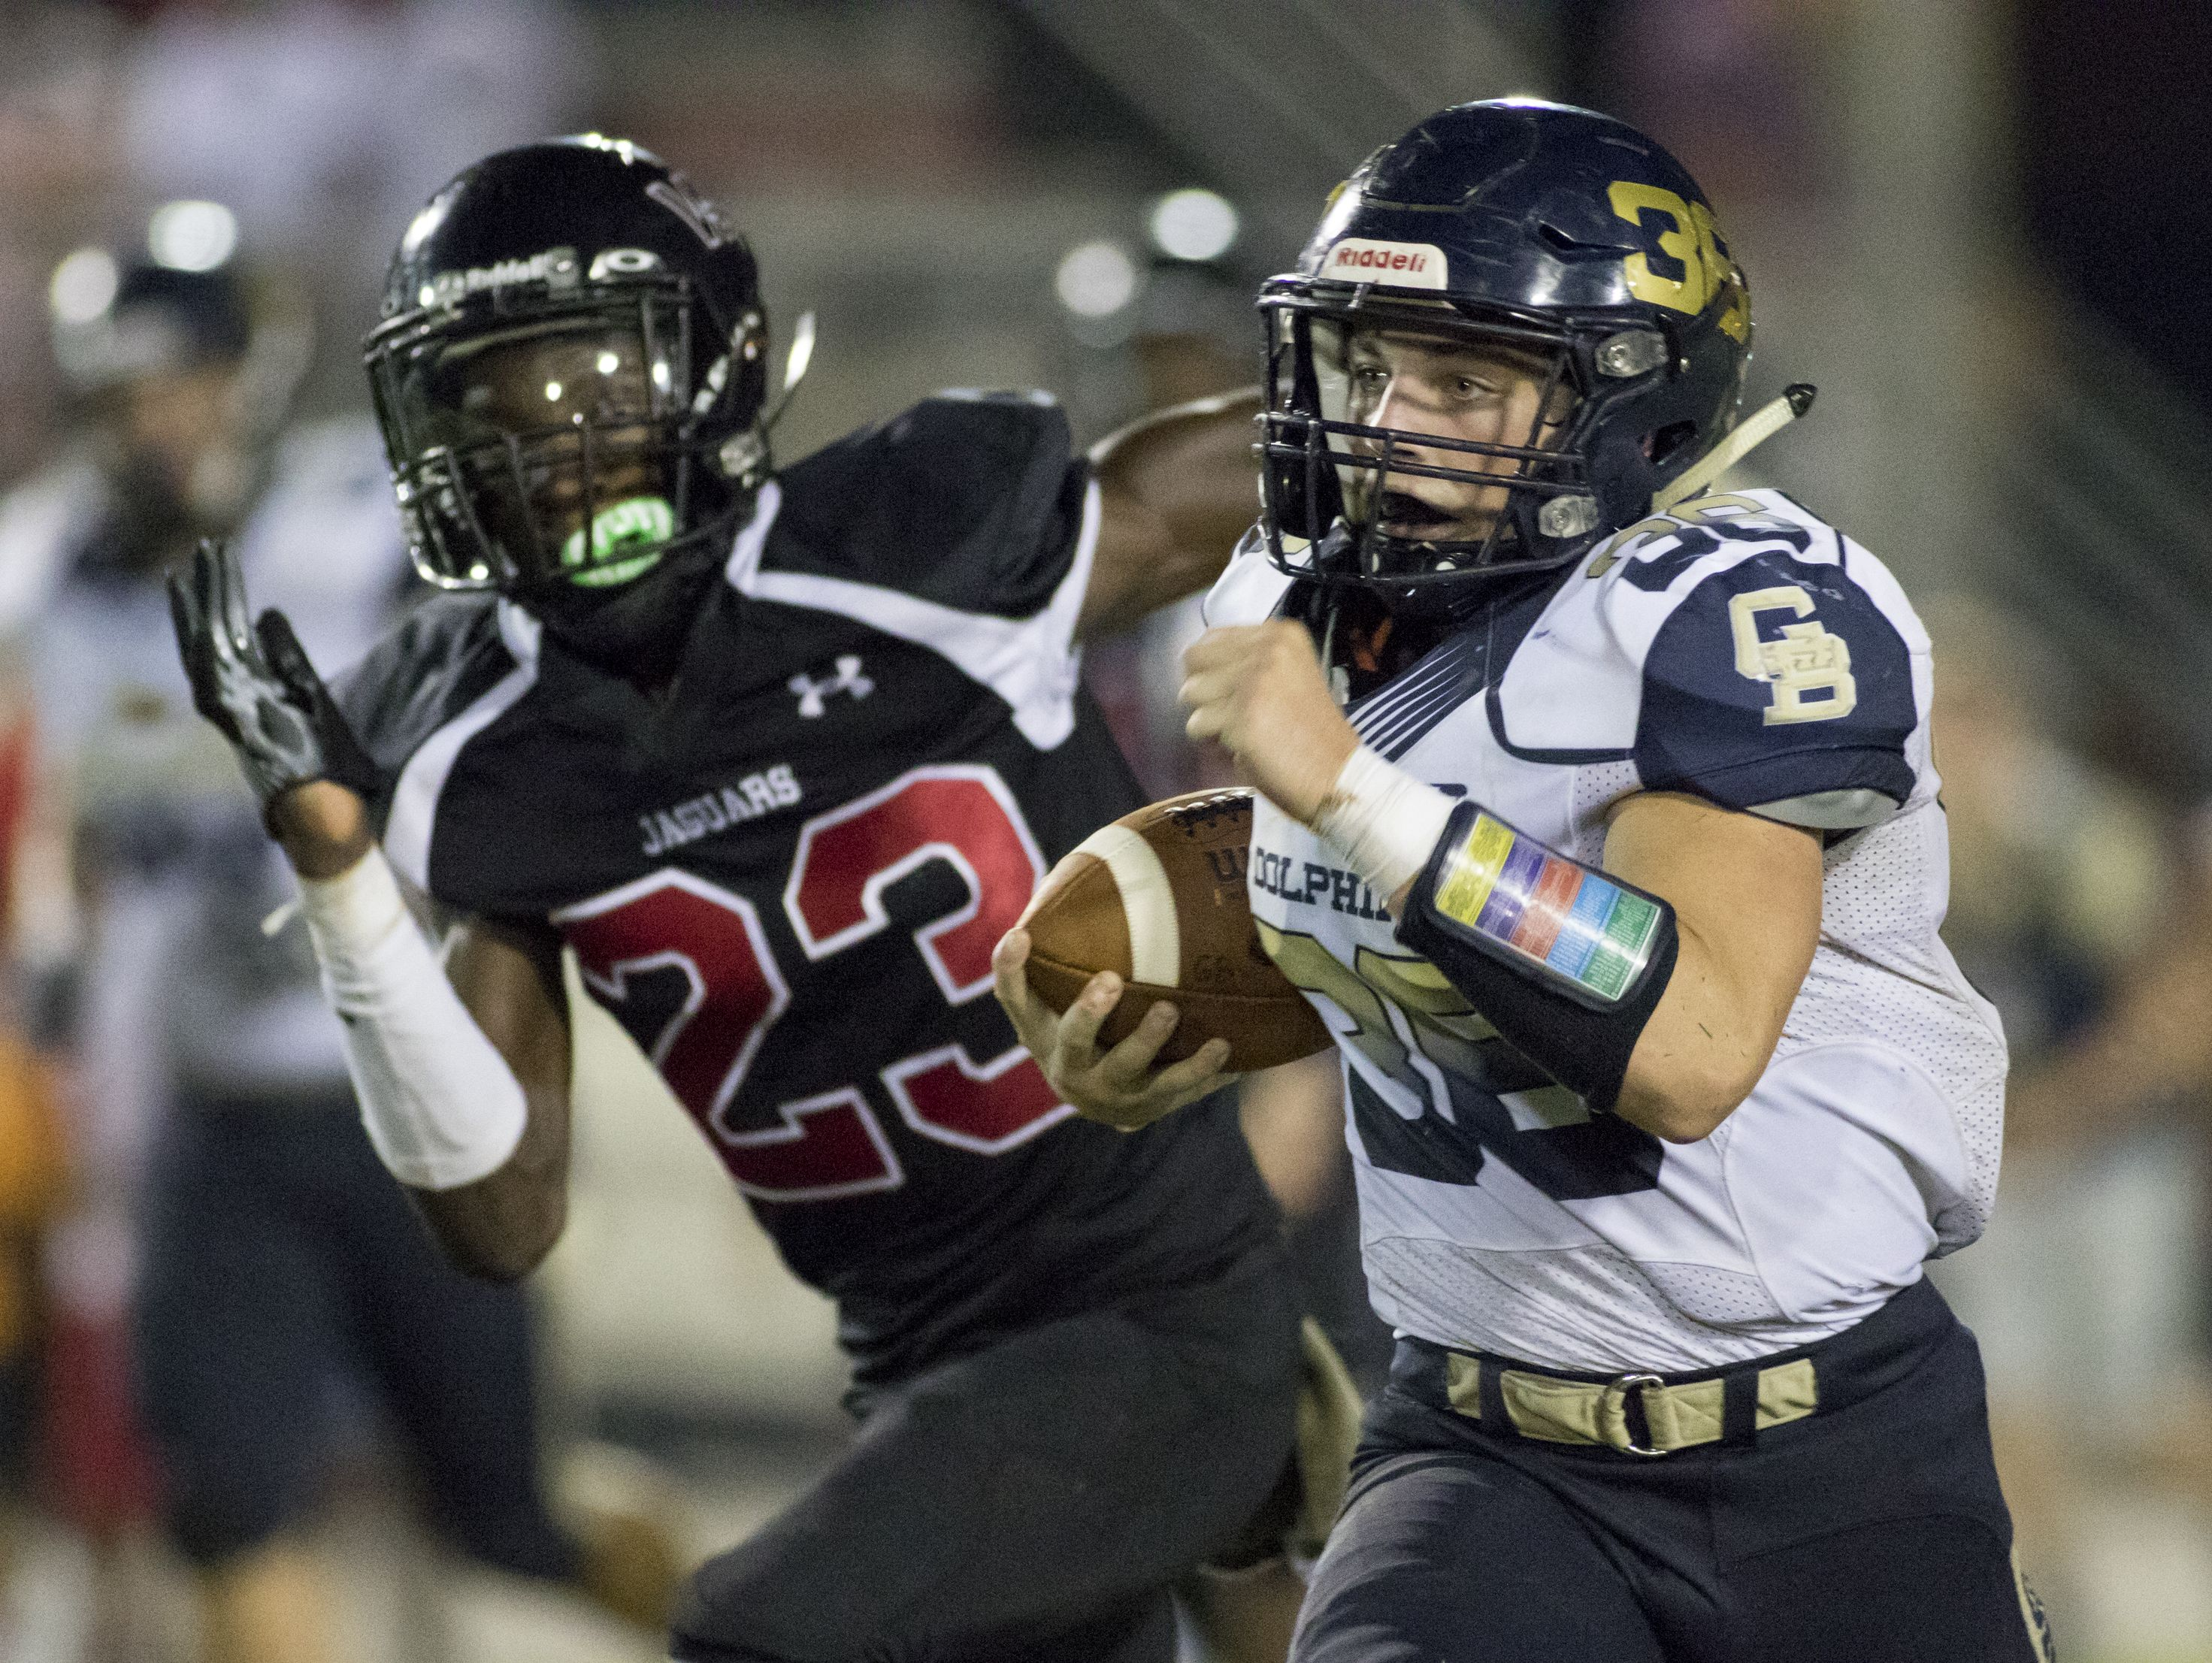 Da'Quaris Gaines (23) pursues Tyler Dittmer (36) during the Gulf Breeze v West Florida football game in Pensacola, FL on Friday, September 23, 2016.